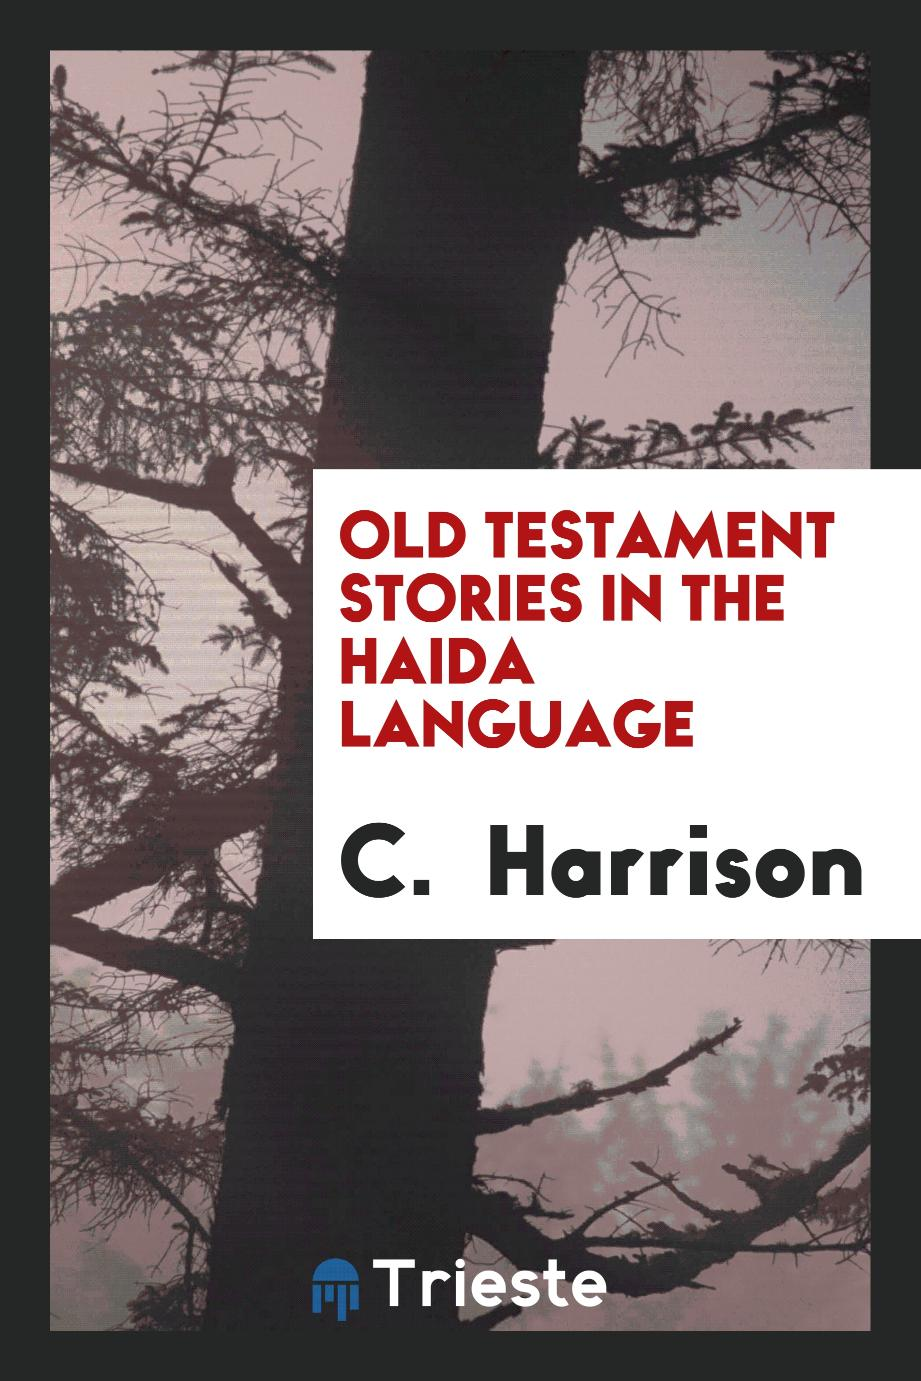 Old Testament Stories in the Haida Language